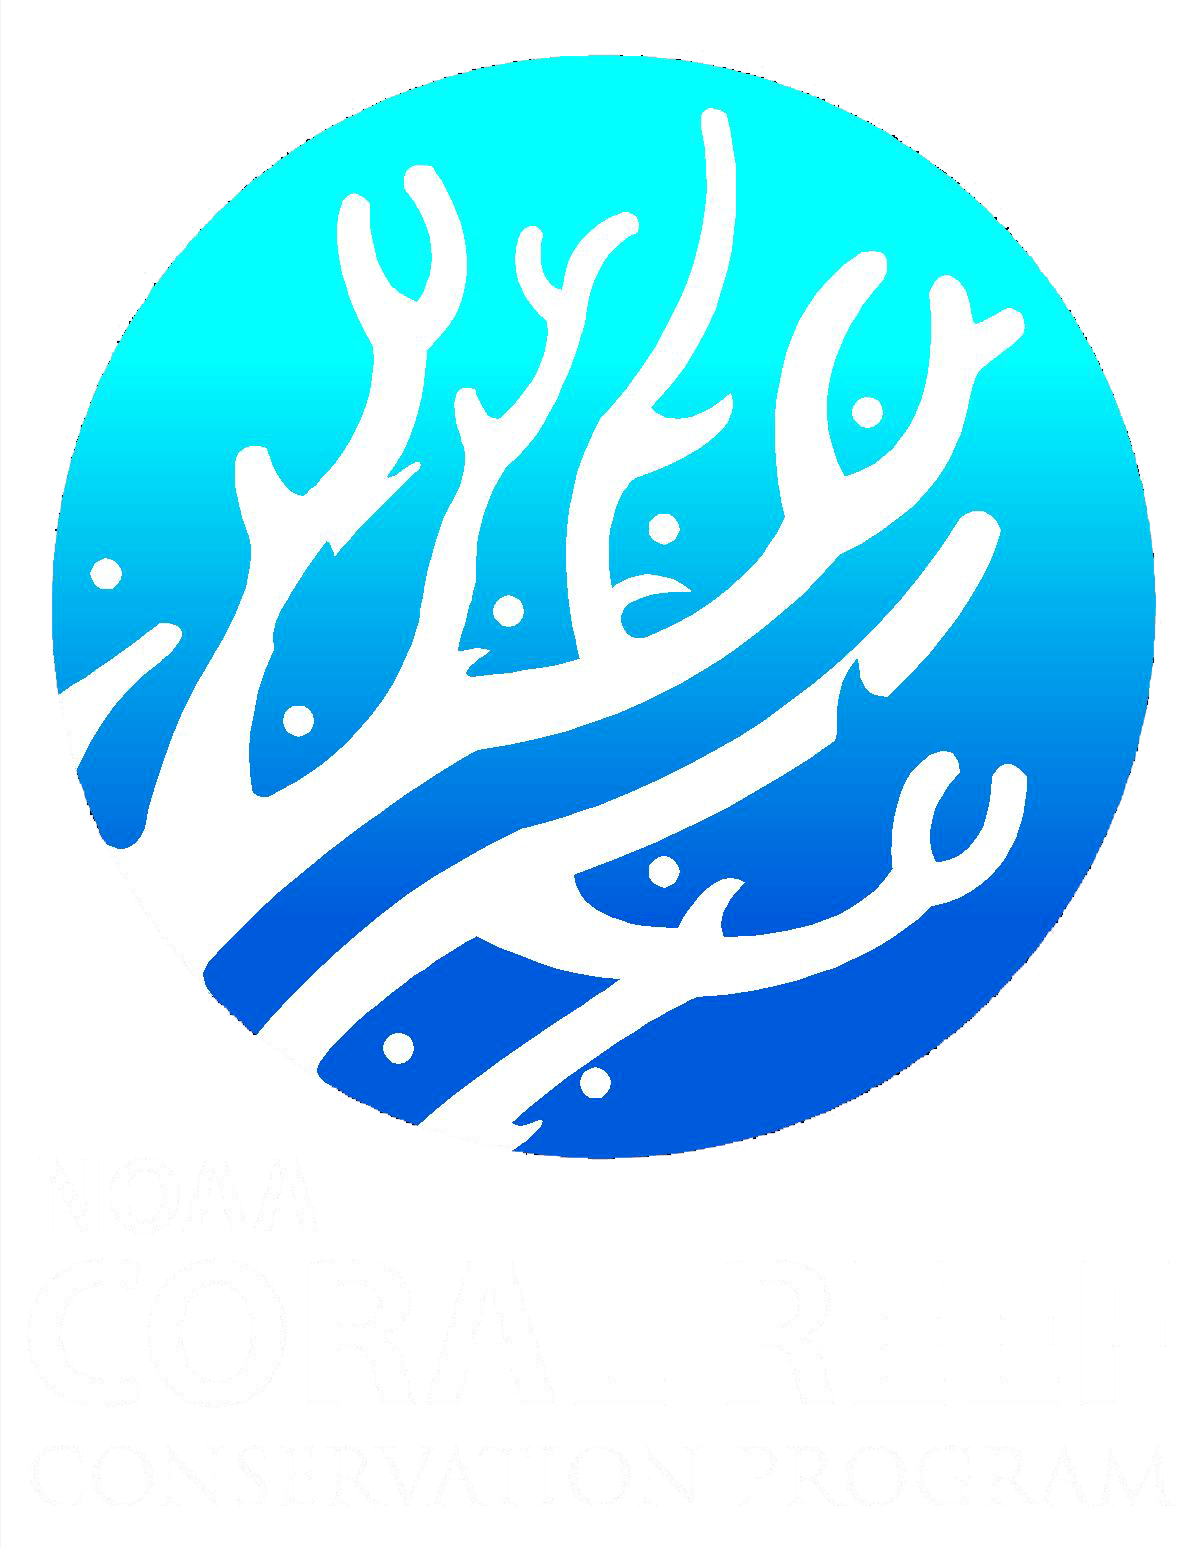 Coral Reef Resilience To Climate Change In The Florida